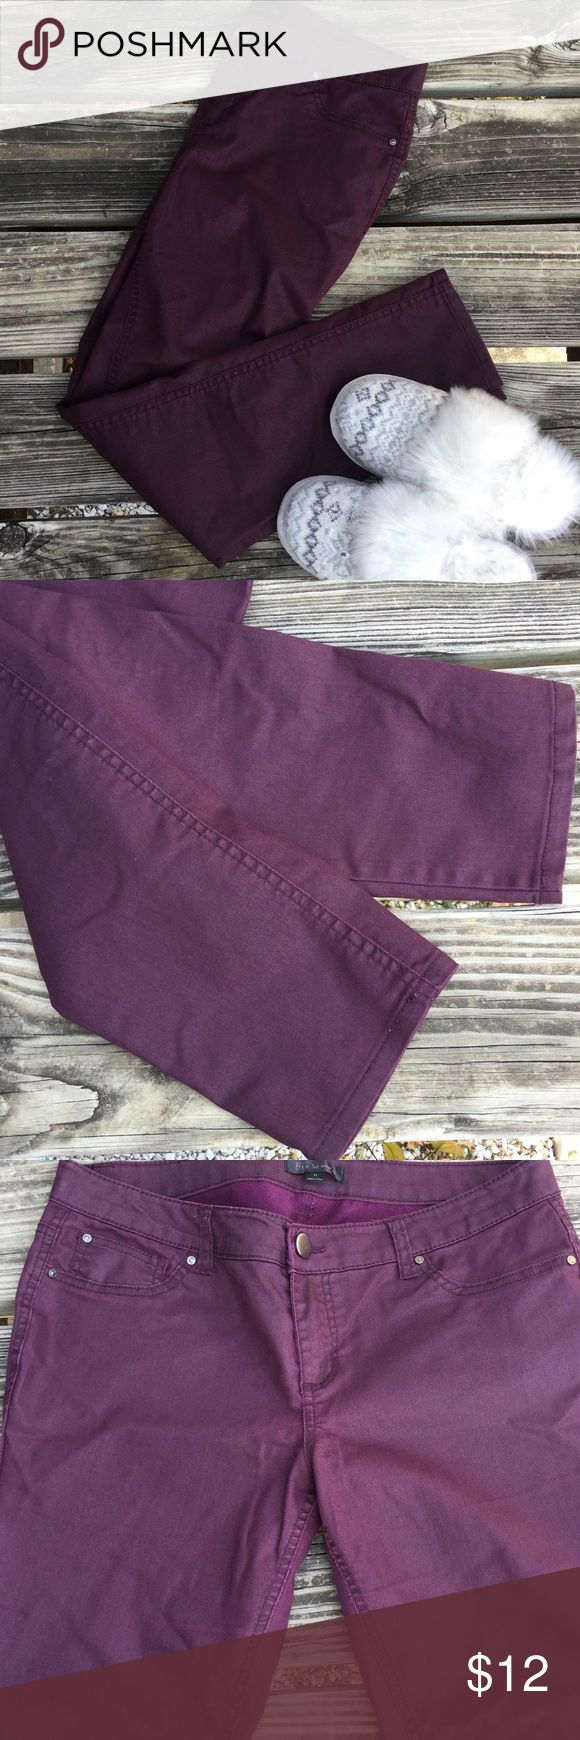 "Purple skinny pants Pretty pants for fallin vibrant purple color pairs nicely with solid colored tops and sweaters, slight scratch on back pocket, not torn or anything just lightened color on the marking, some stretch, waist measures 16"" across, inseam is 29.5"" Fire Los Angeles Pants Skinny"